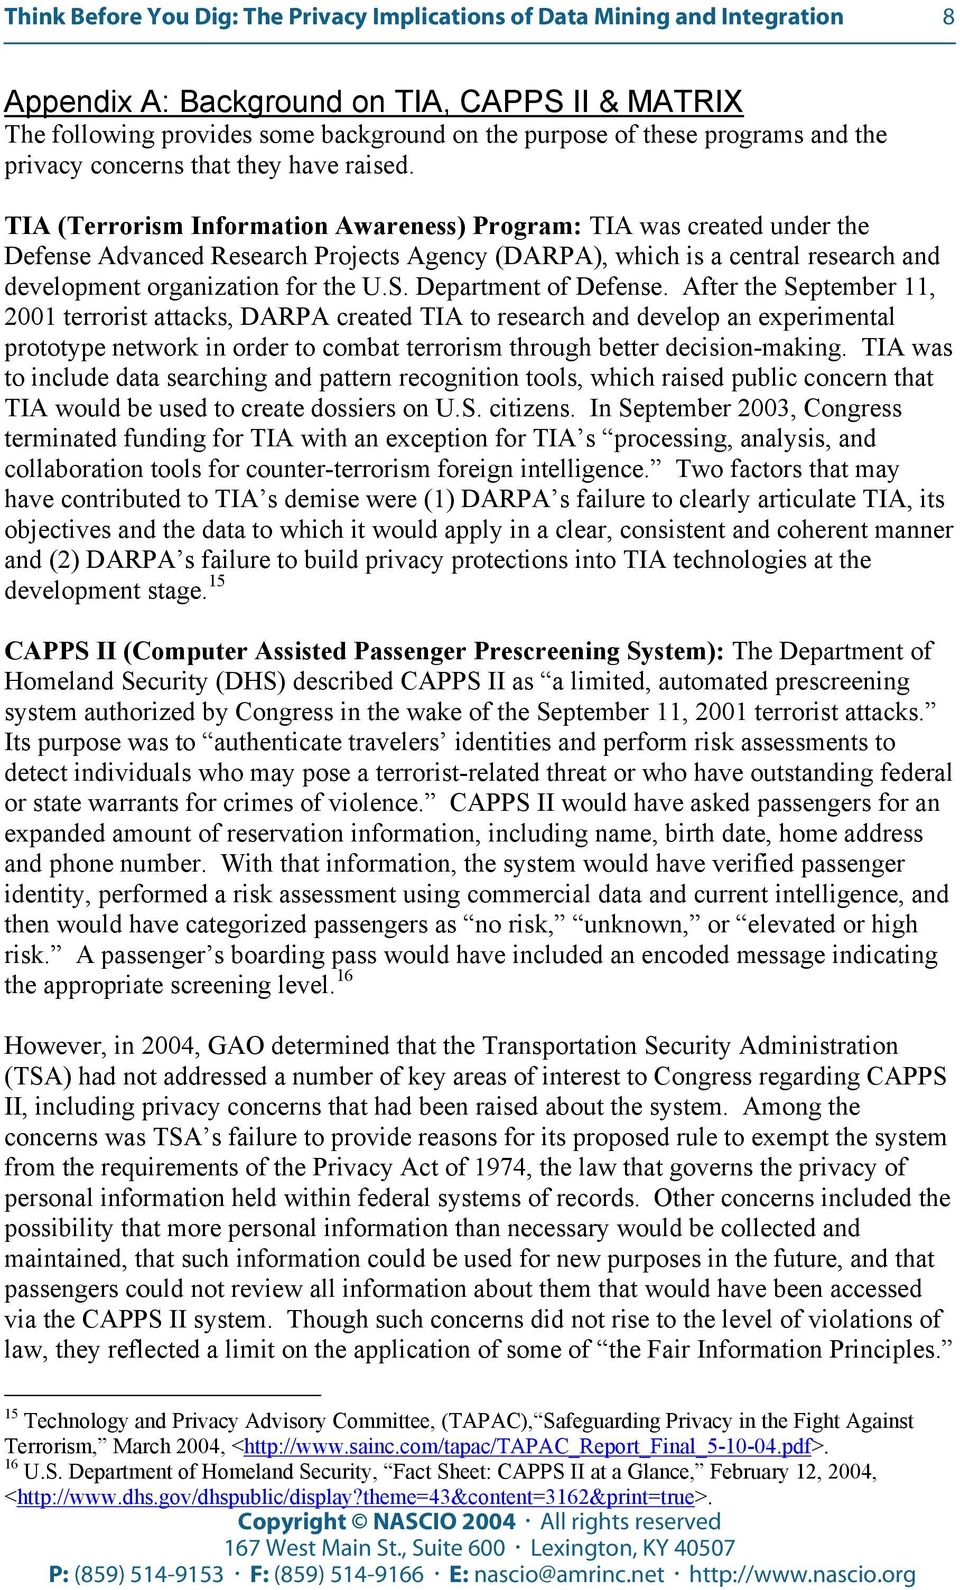 TIA (Terrorism Information Awareness) Program: TIA was created under the Defense Advanced Research Projects Agency (DARPA), which is a central research and development organization for the U.S.